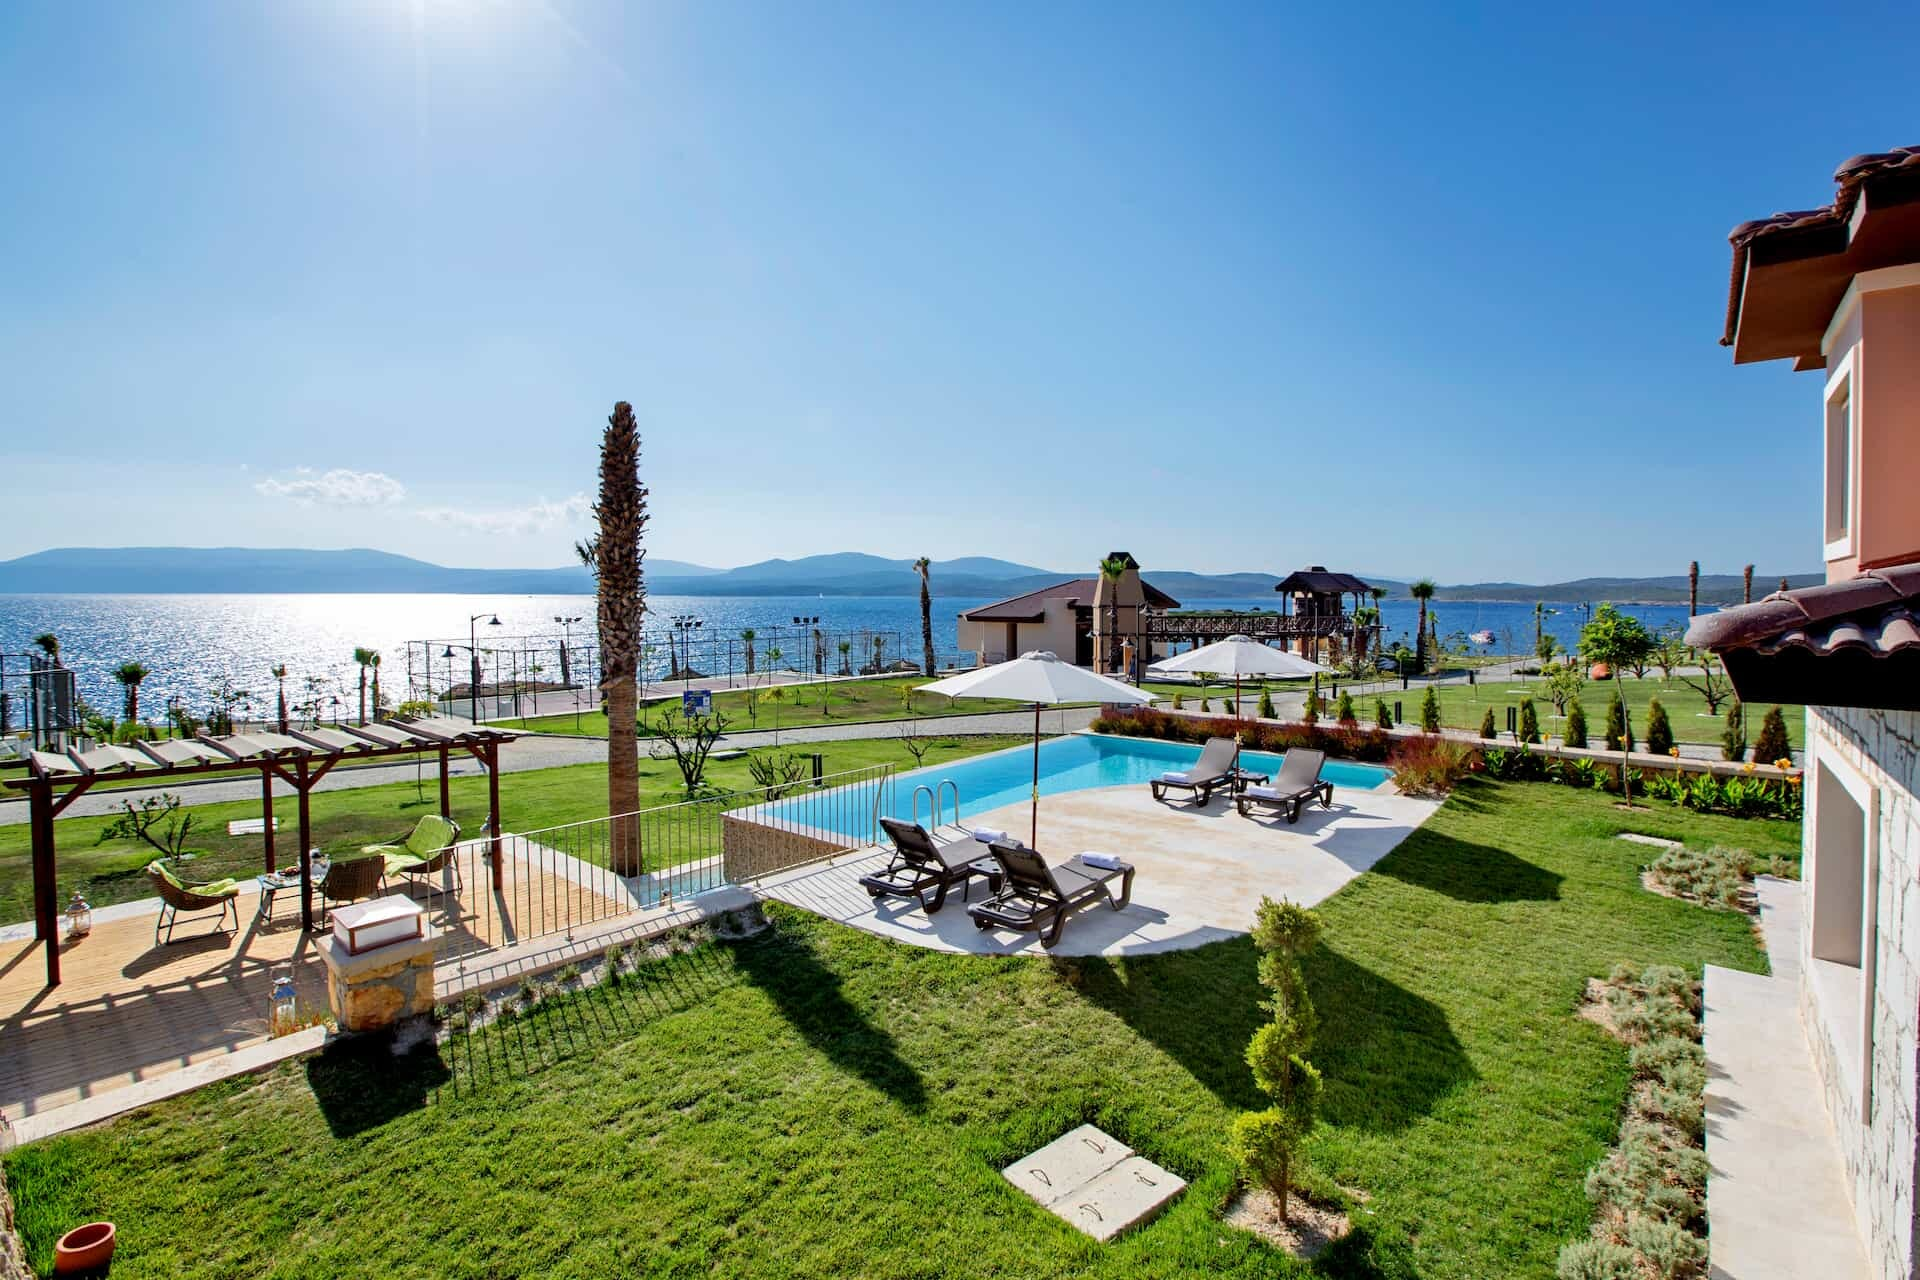 EUPHORIA AEGEAN RESORT AND THERMAL HOTEL – Executive Villa